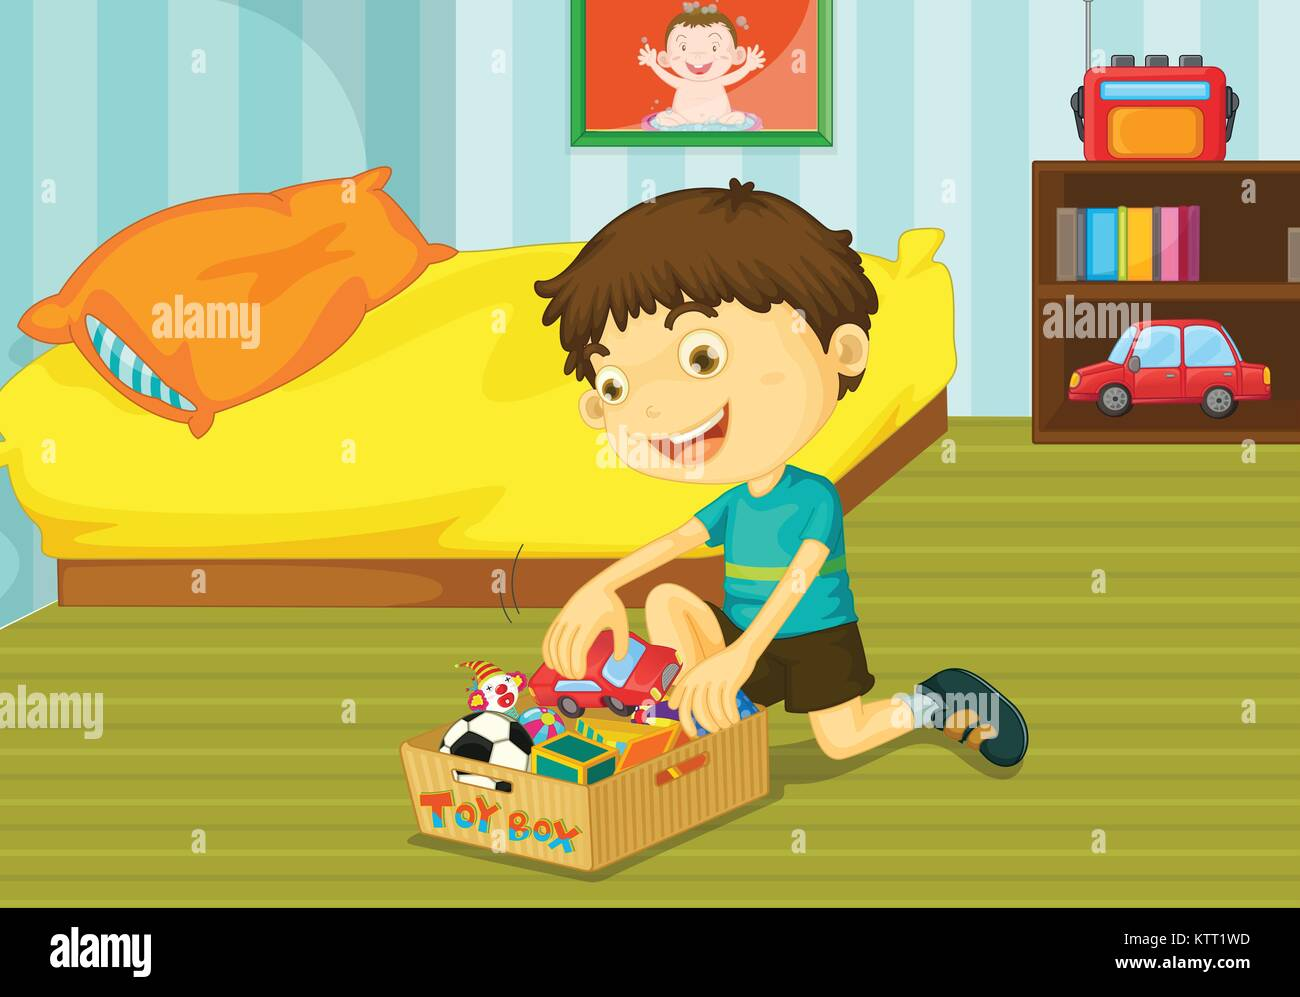 Illustration of helping at home concept - Stock Vector